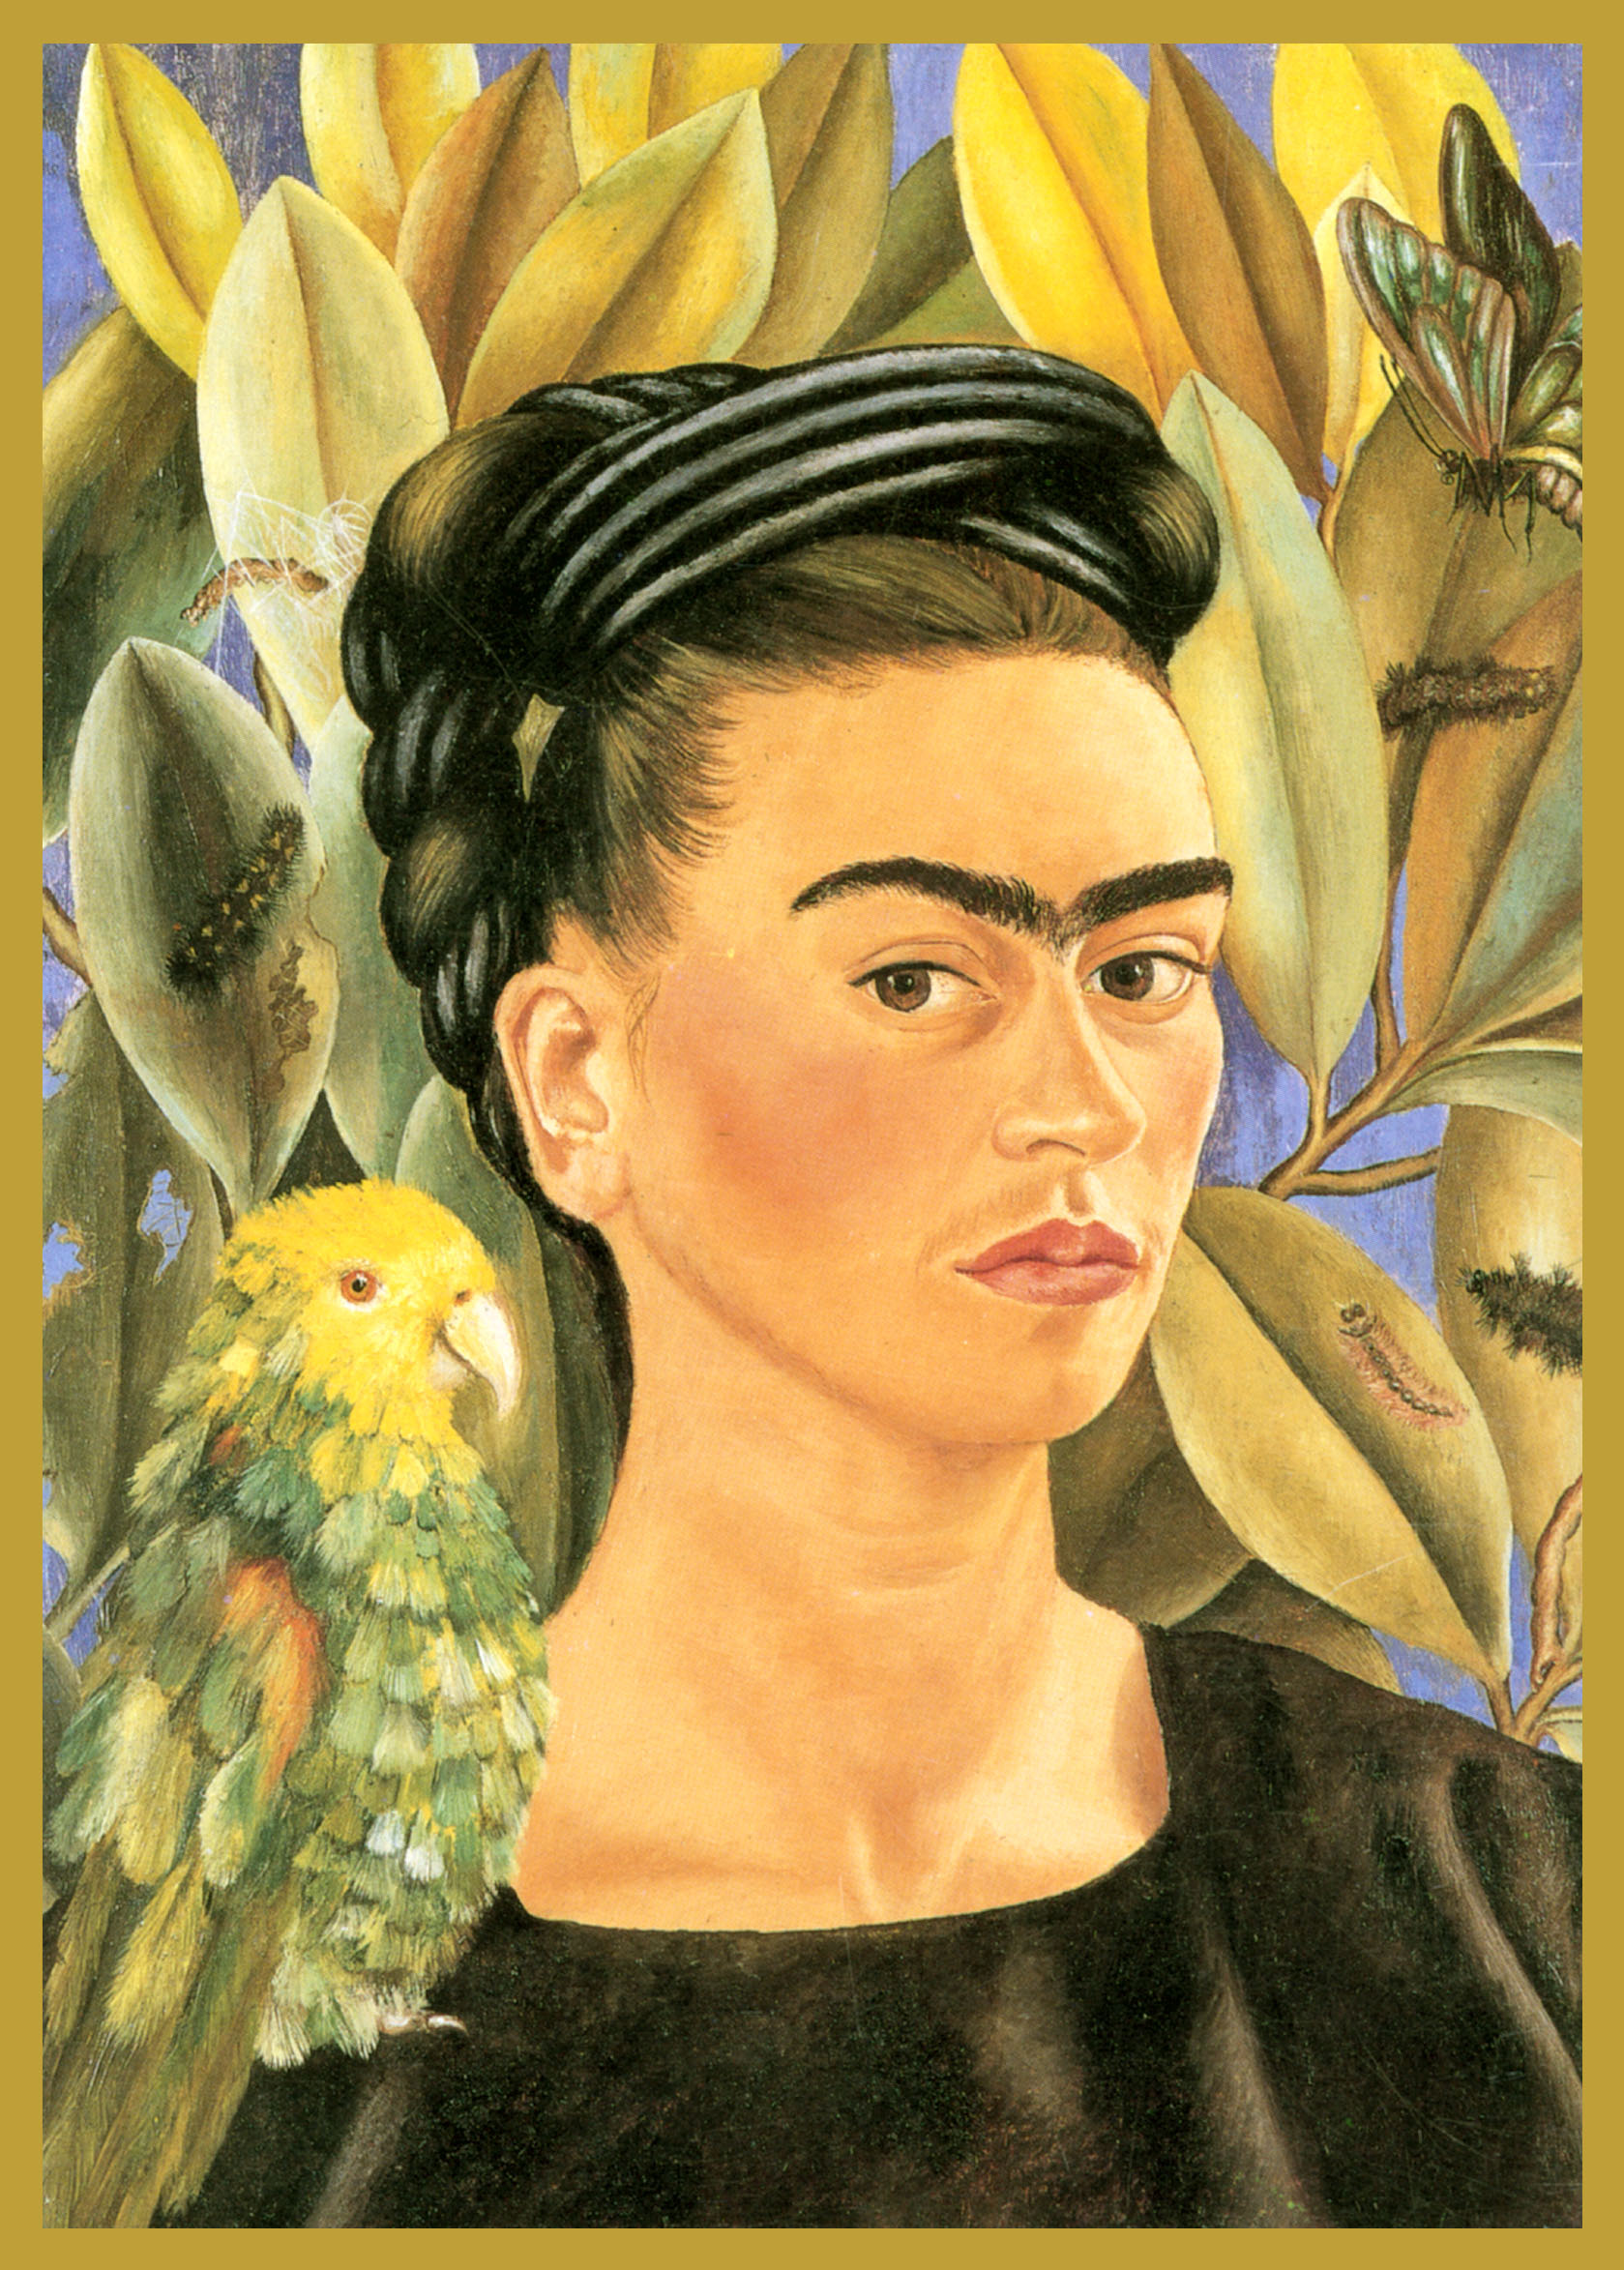 FR-PA1 - Frida KahloBeloved and influential Mexican painter of the middle twentieth century.